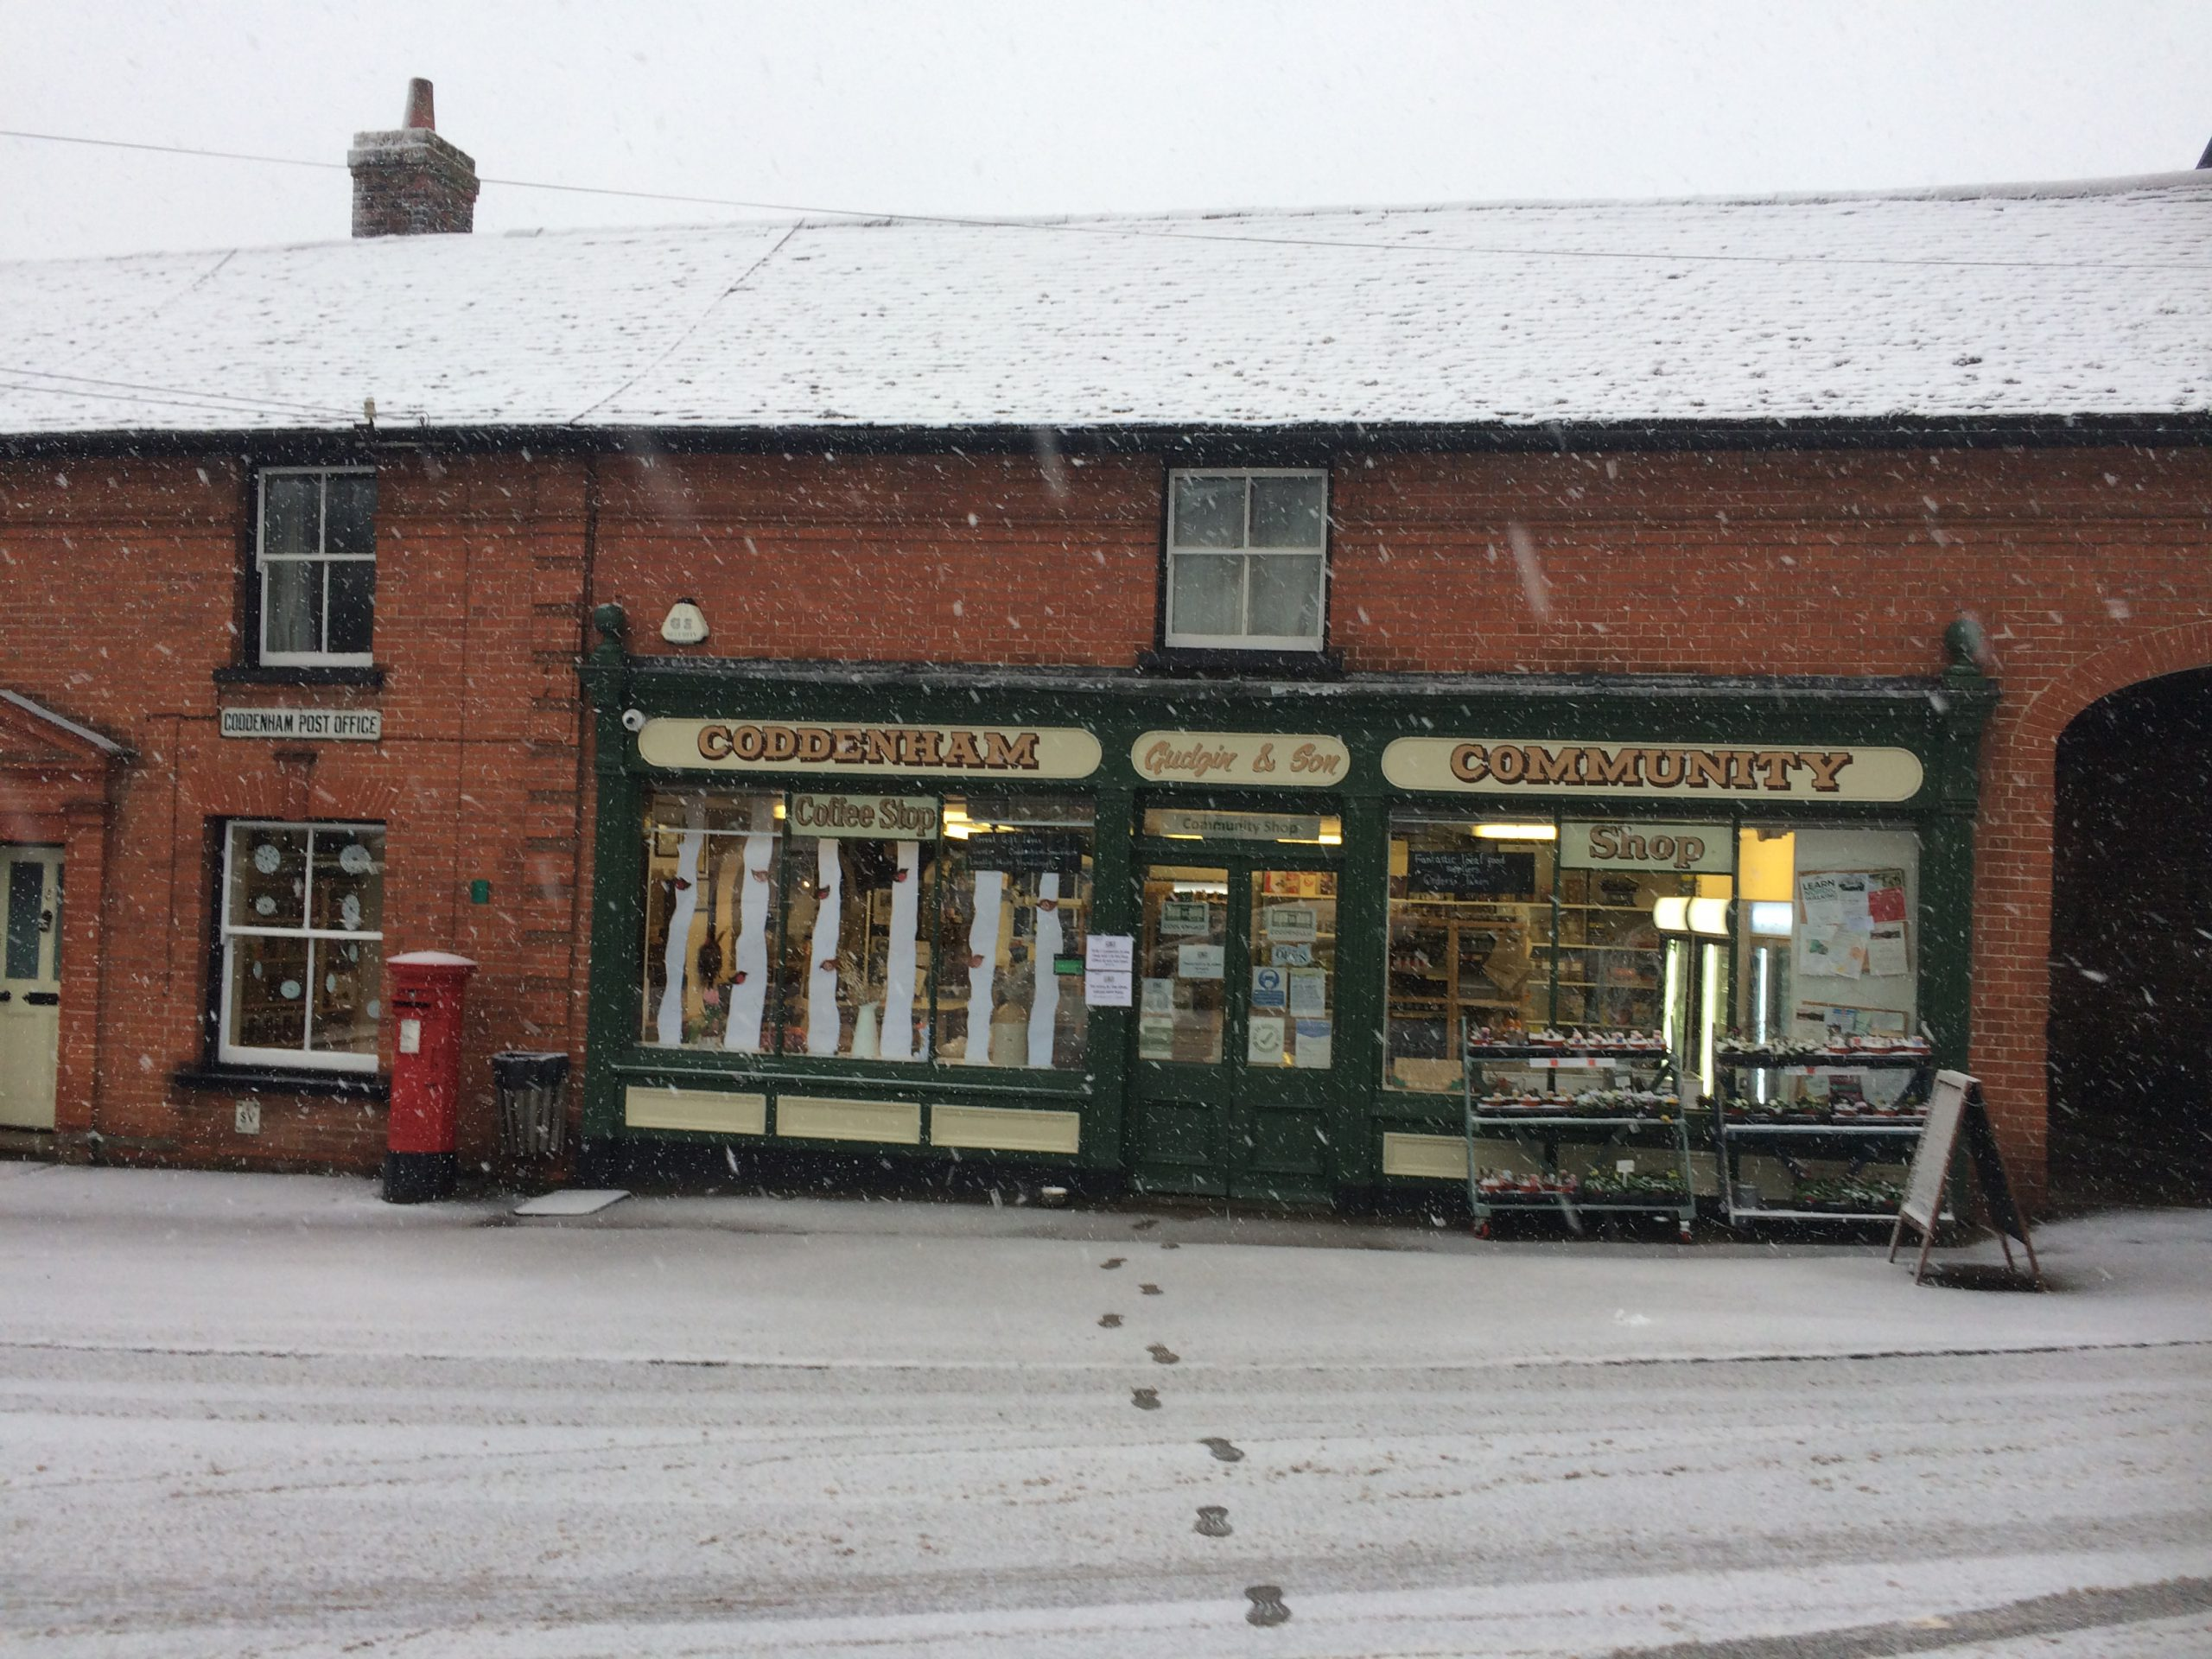 Shop in the snow